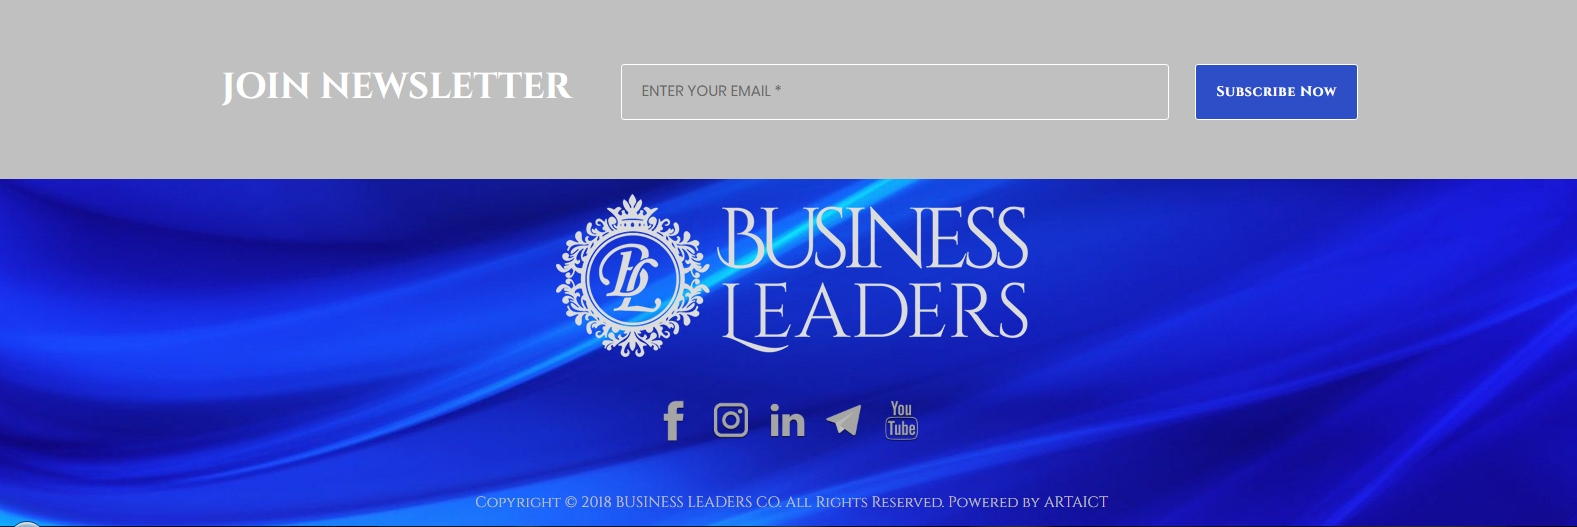 screenshot 20190513 171828 - BUSINESSLEADERS.CA